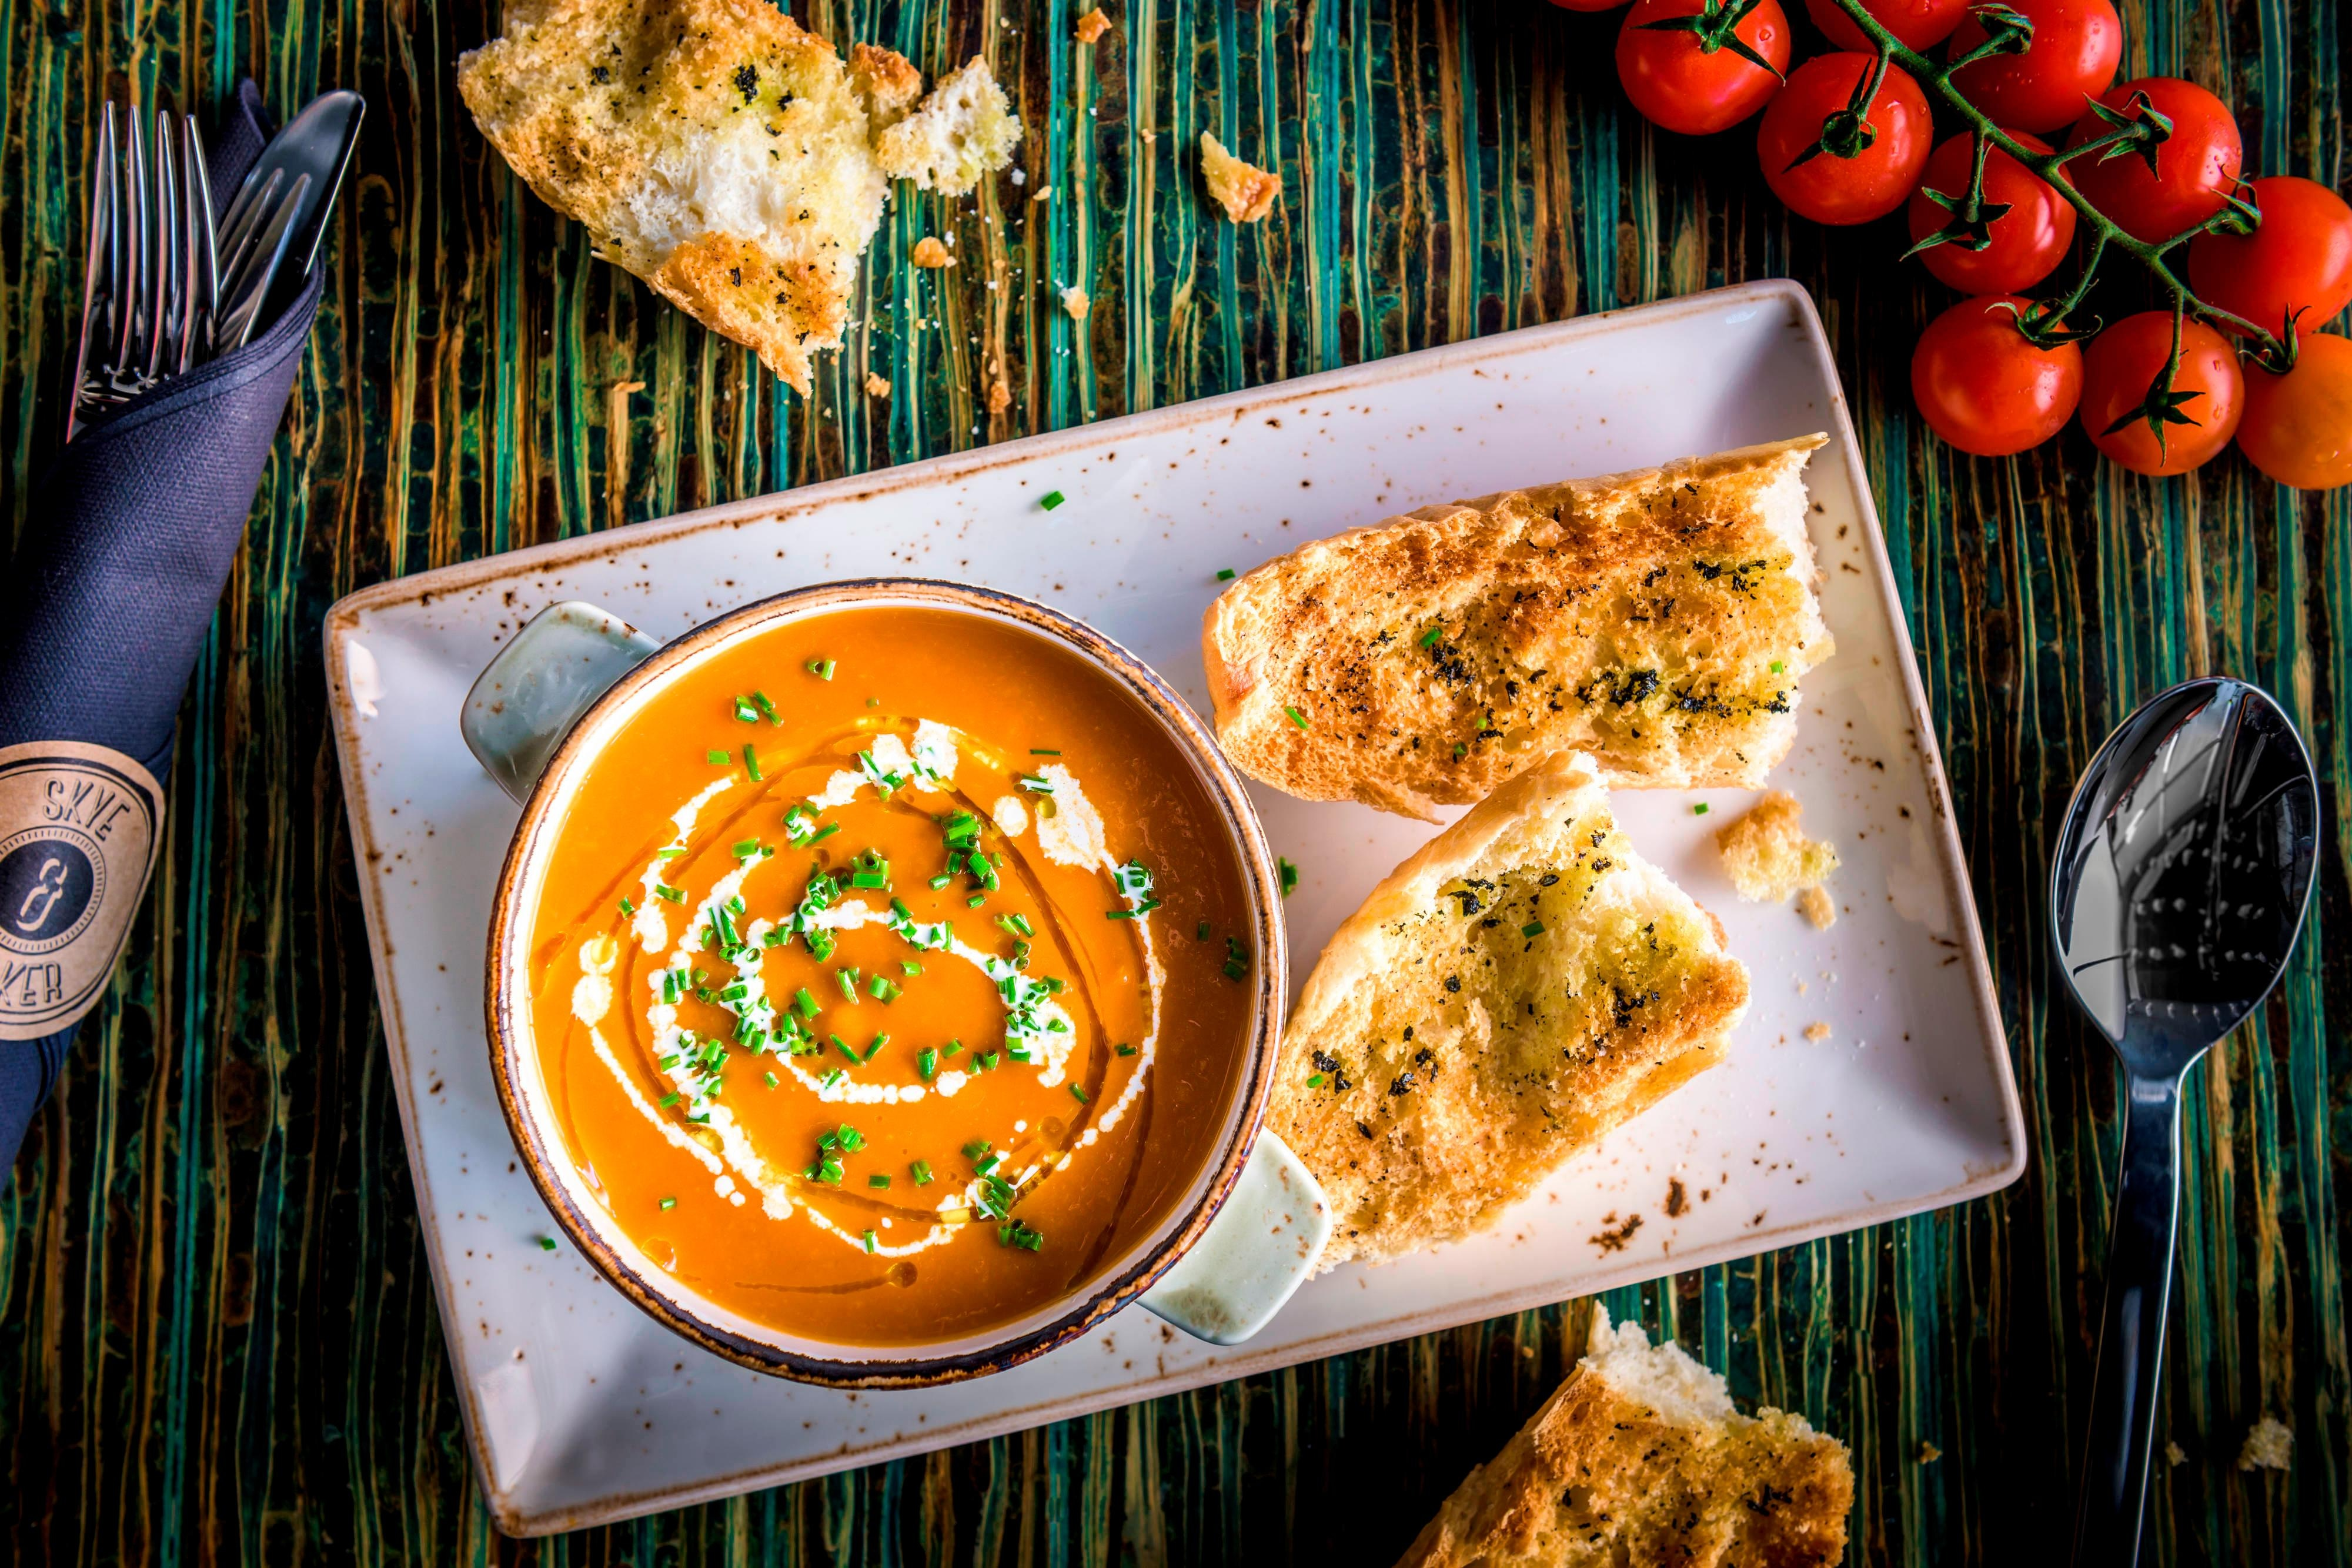 Tomato & Fennel Soup